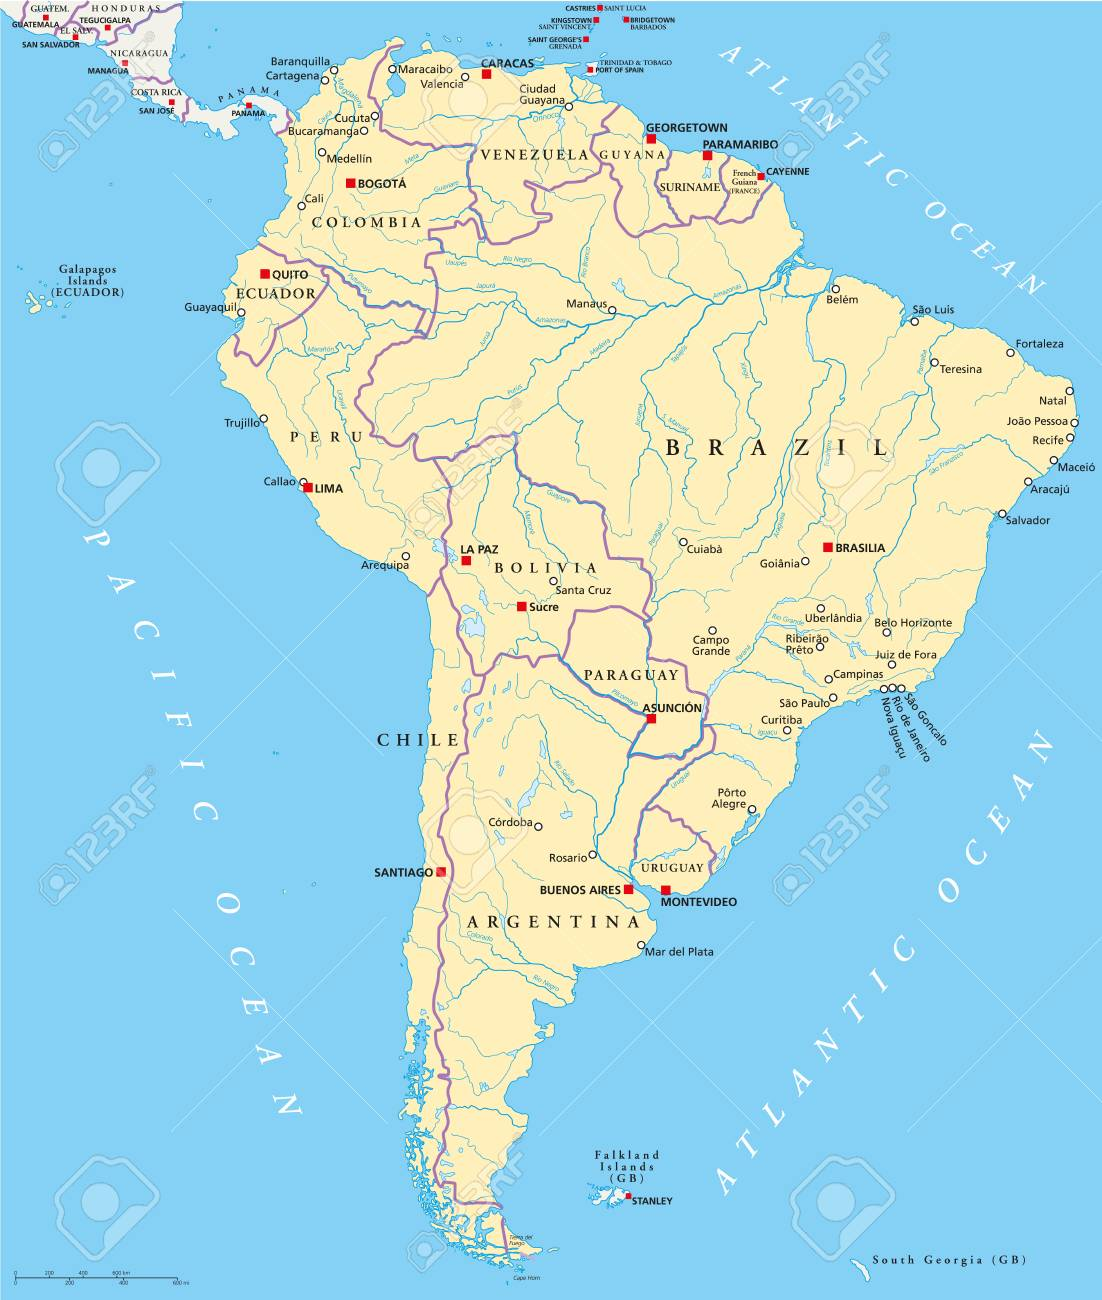 South America Political Map With Single States, Capitals, Most ...